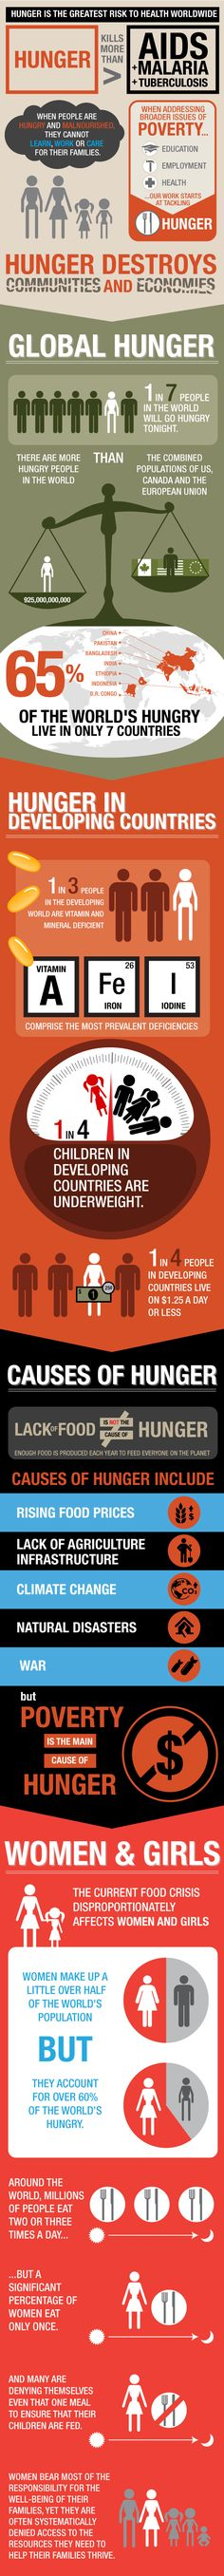 Hunger kills more people than AIDS, malaria and tuberculosis combined.